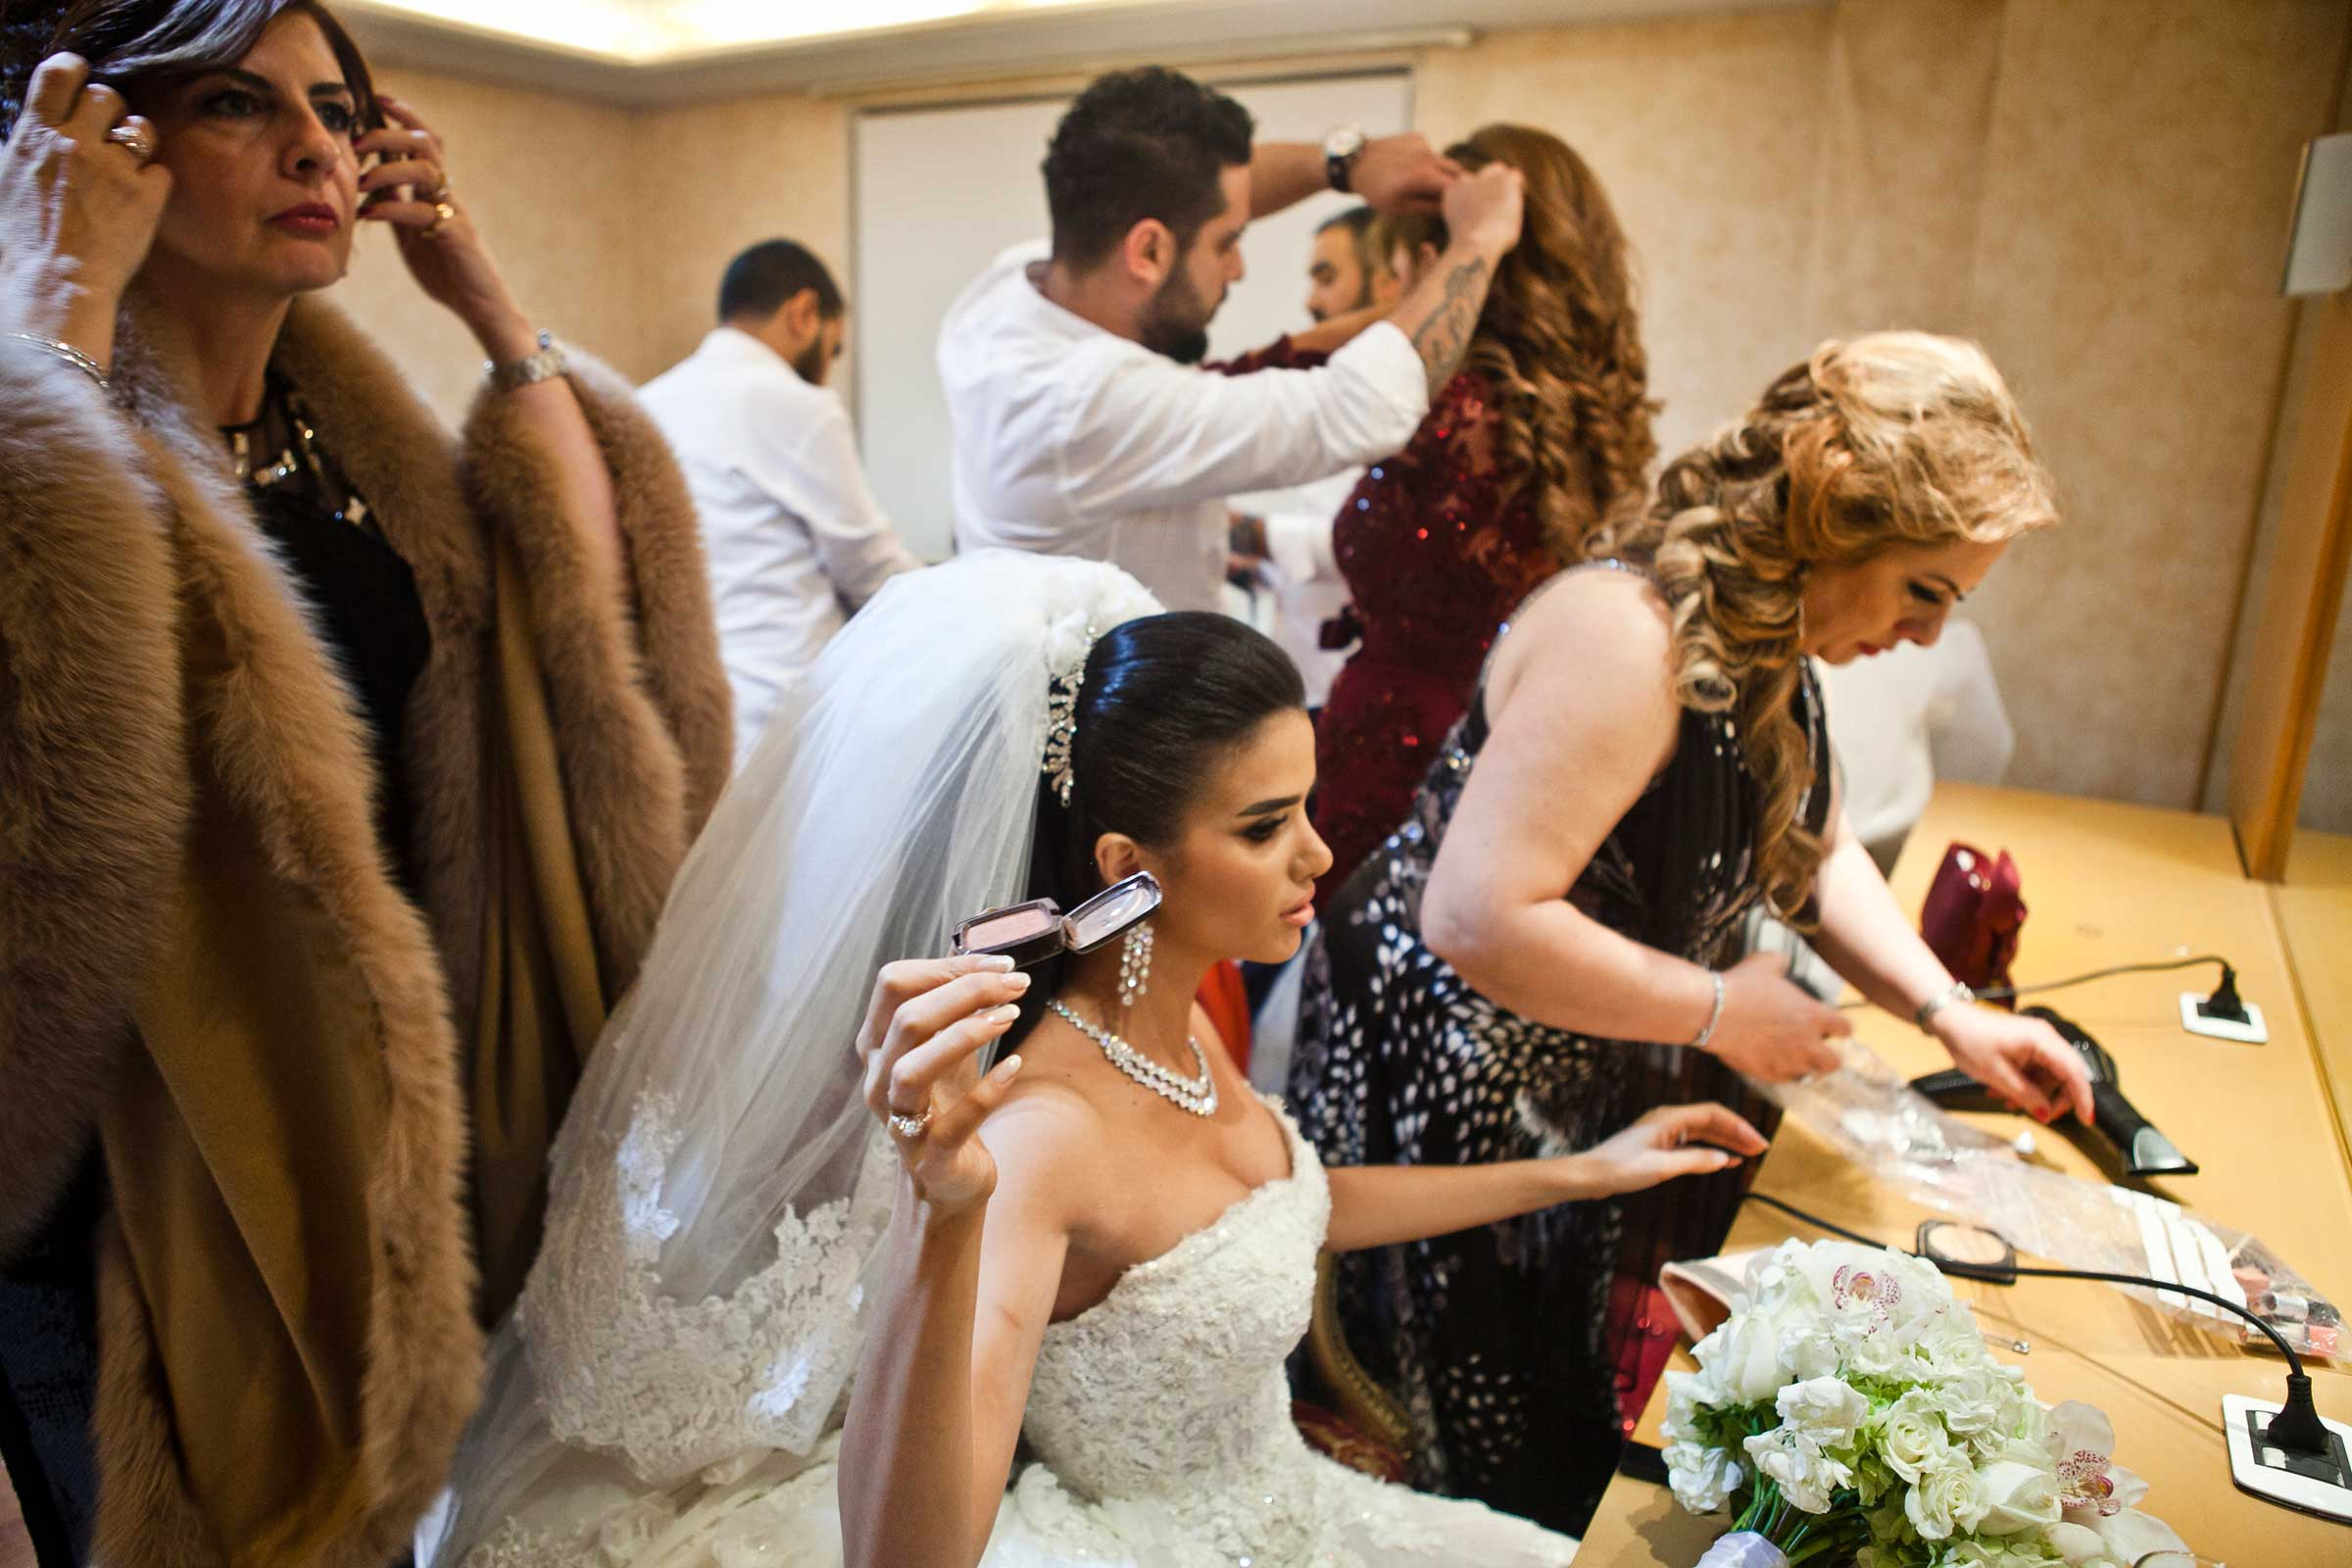 Jessica Obeid and her female relatives fix ther make up in her holding room before she enters her large wedding. Her mother, Leila Obeid, is a famous beauty consultant featured on National television.